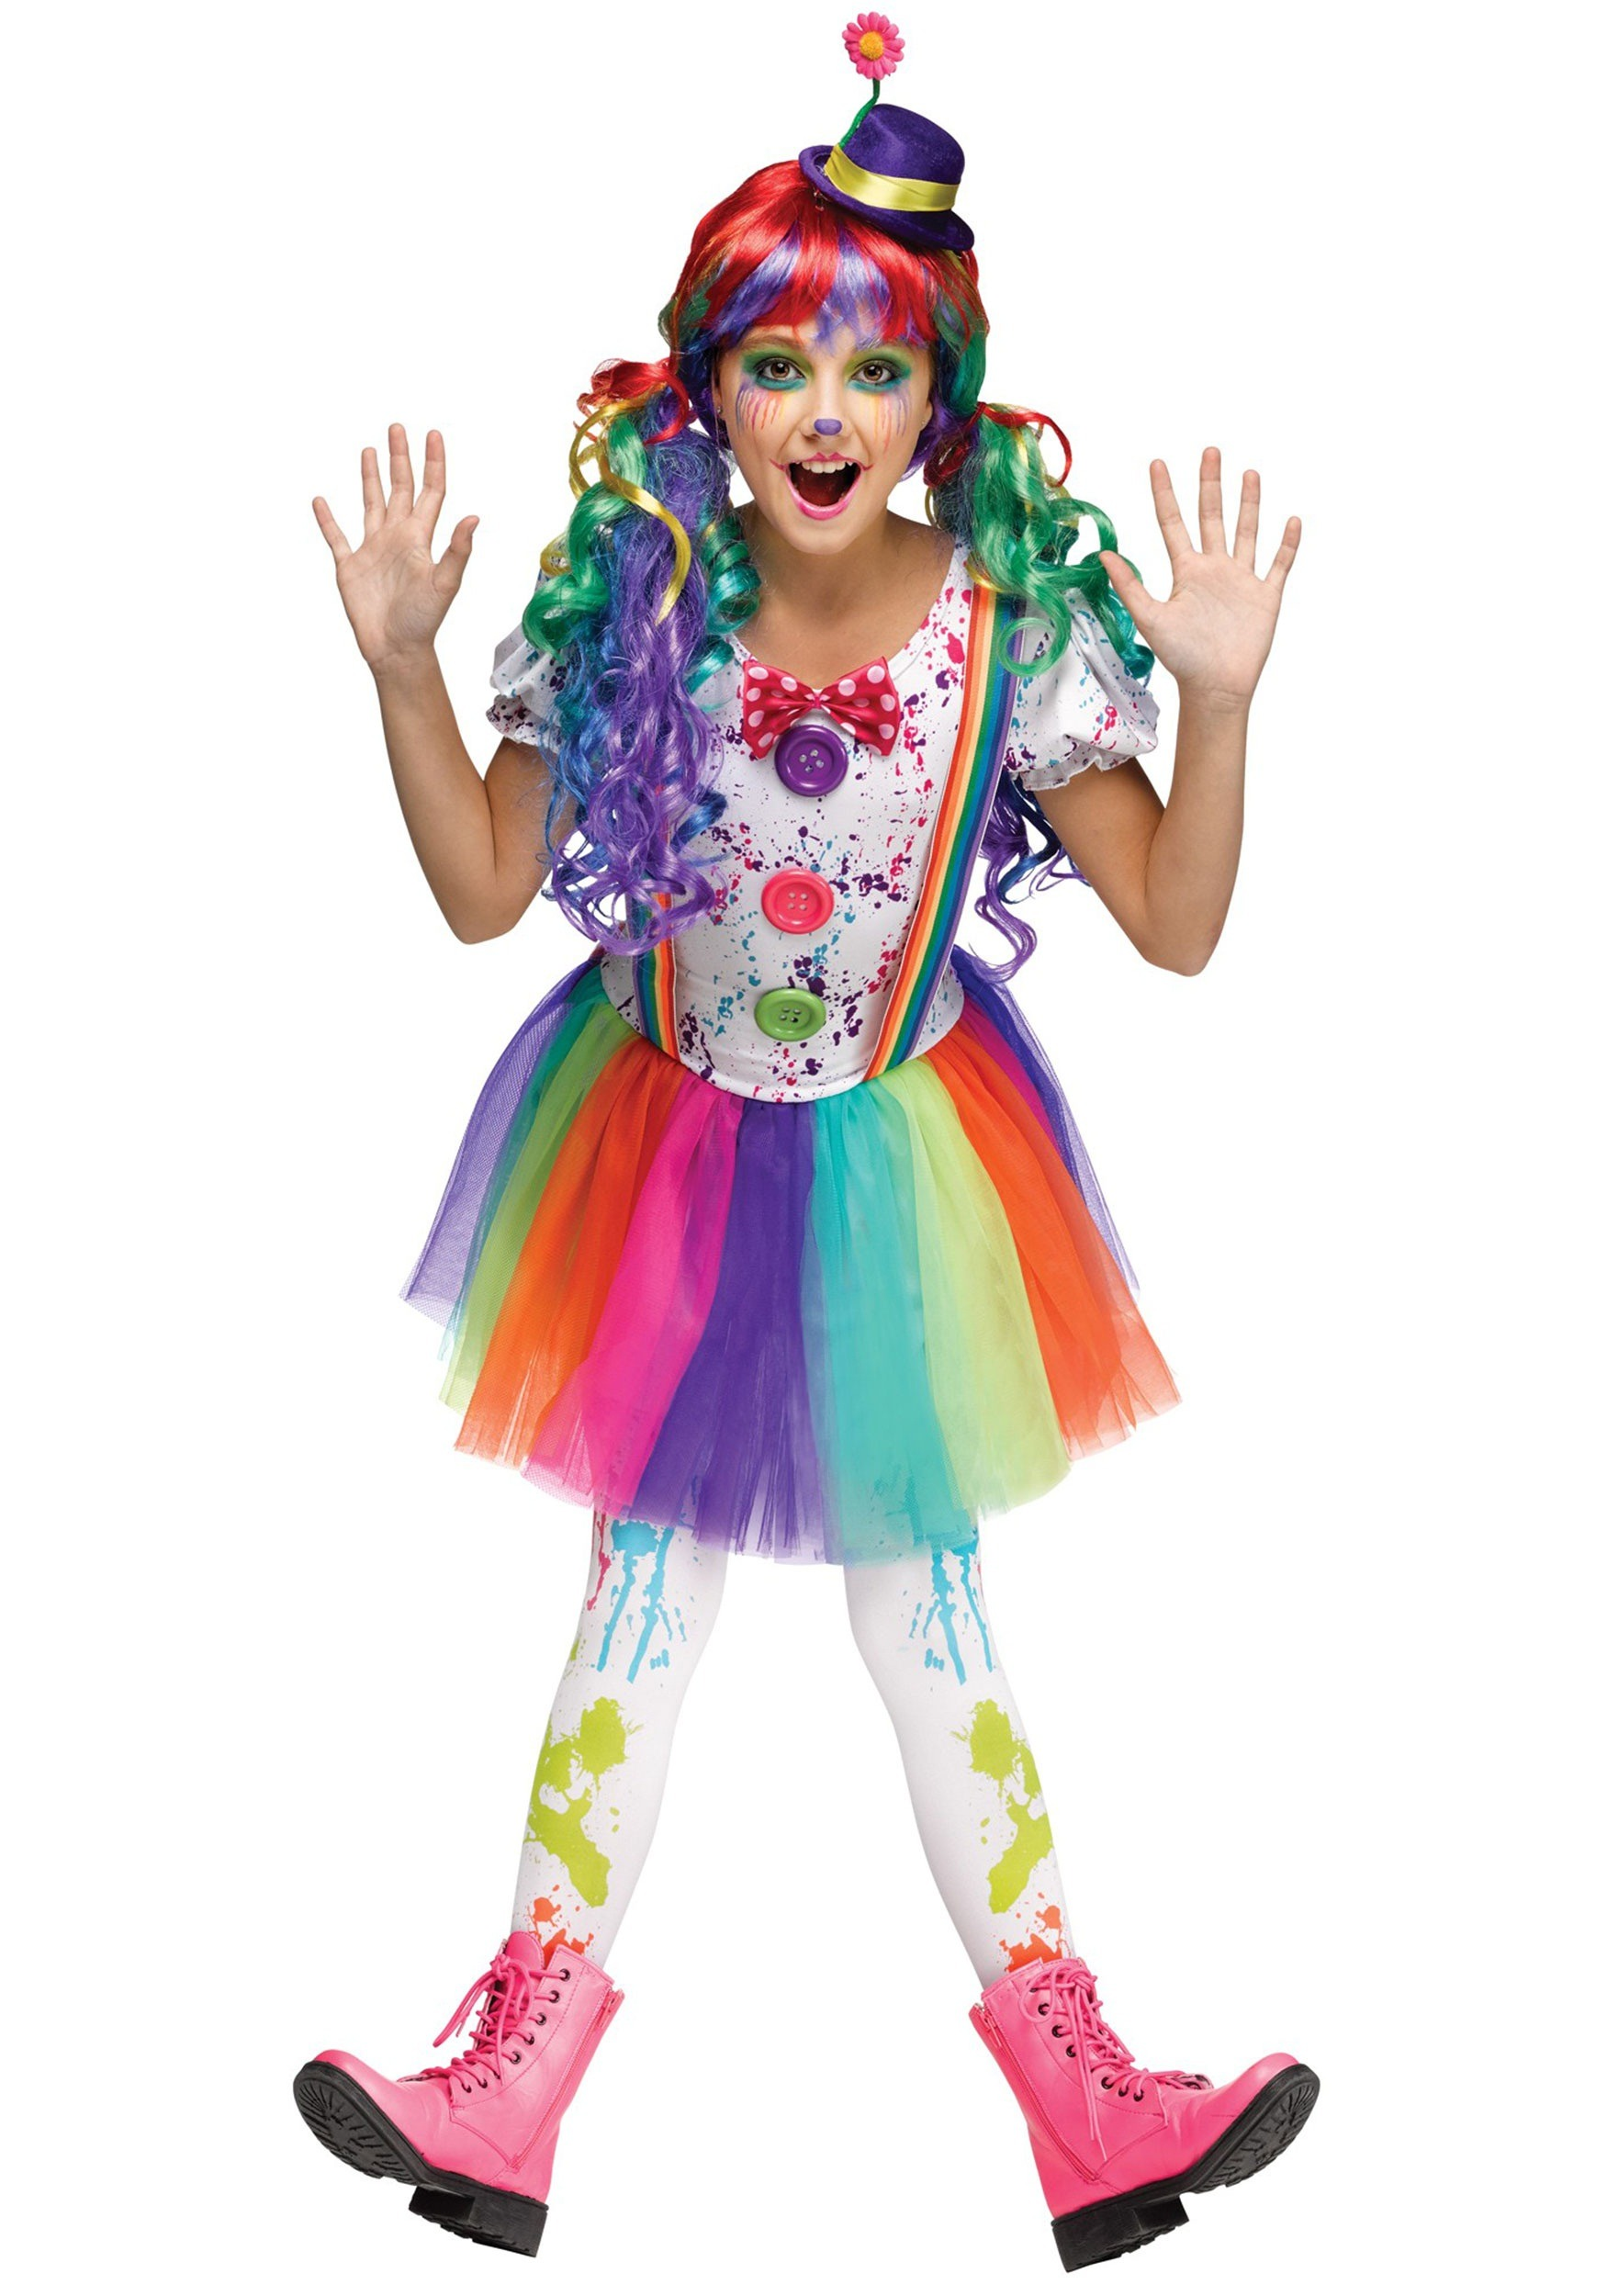 Girls Crazy Color Clown Costume  sc 1 st  Halloween Costumes & Clown Costumes - Adult Kids Clown Costume for Halloween